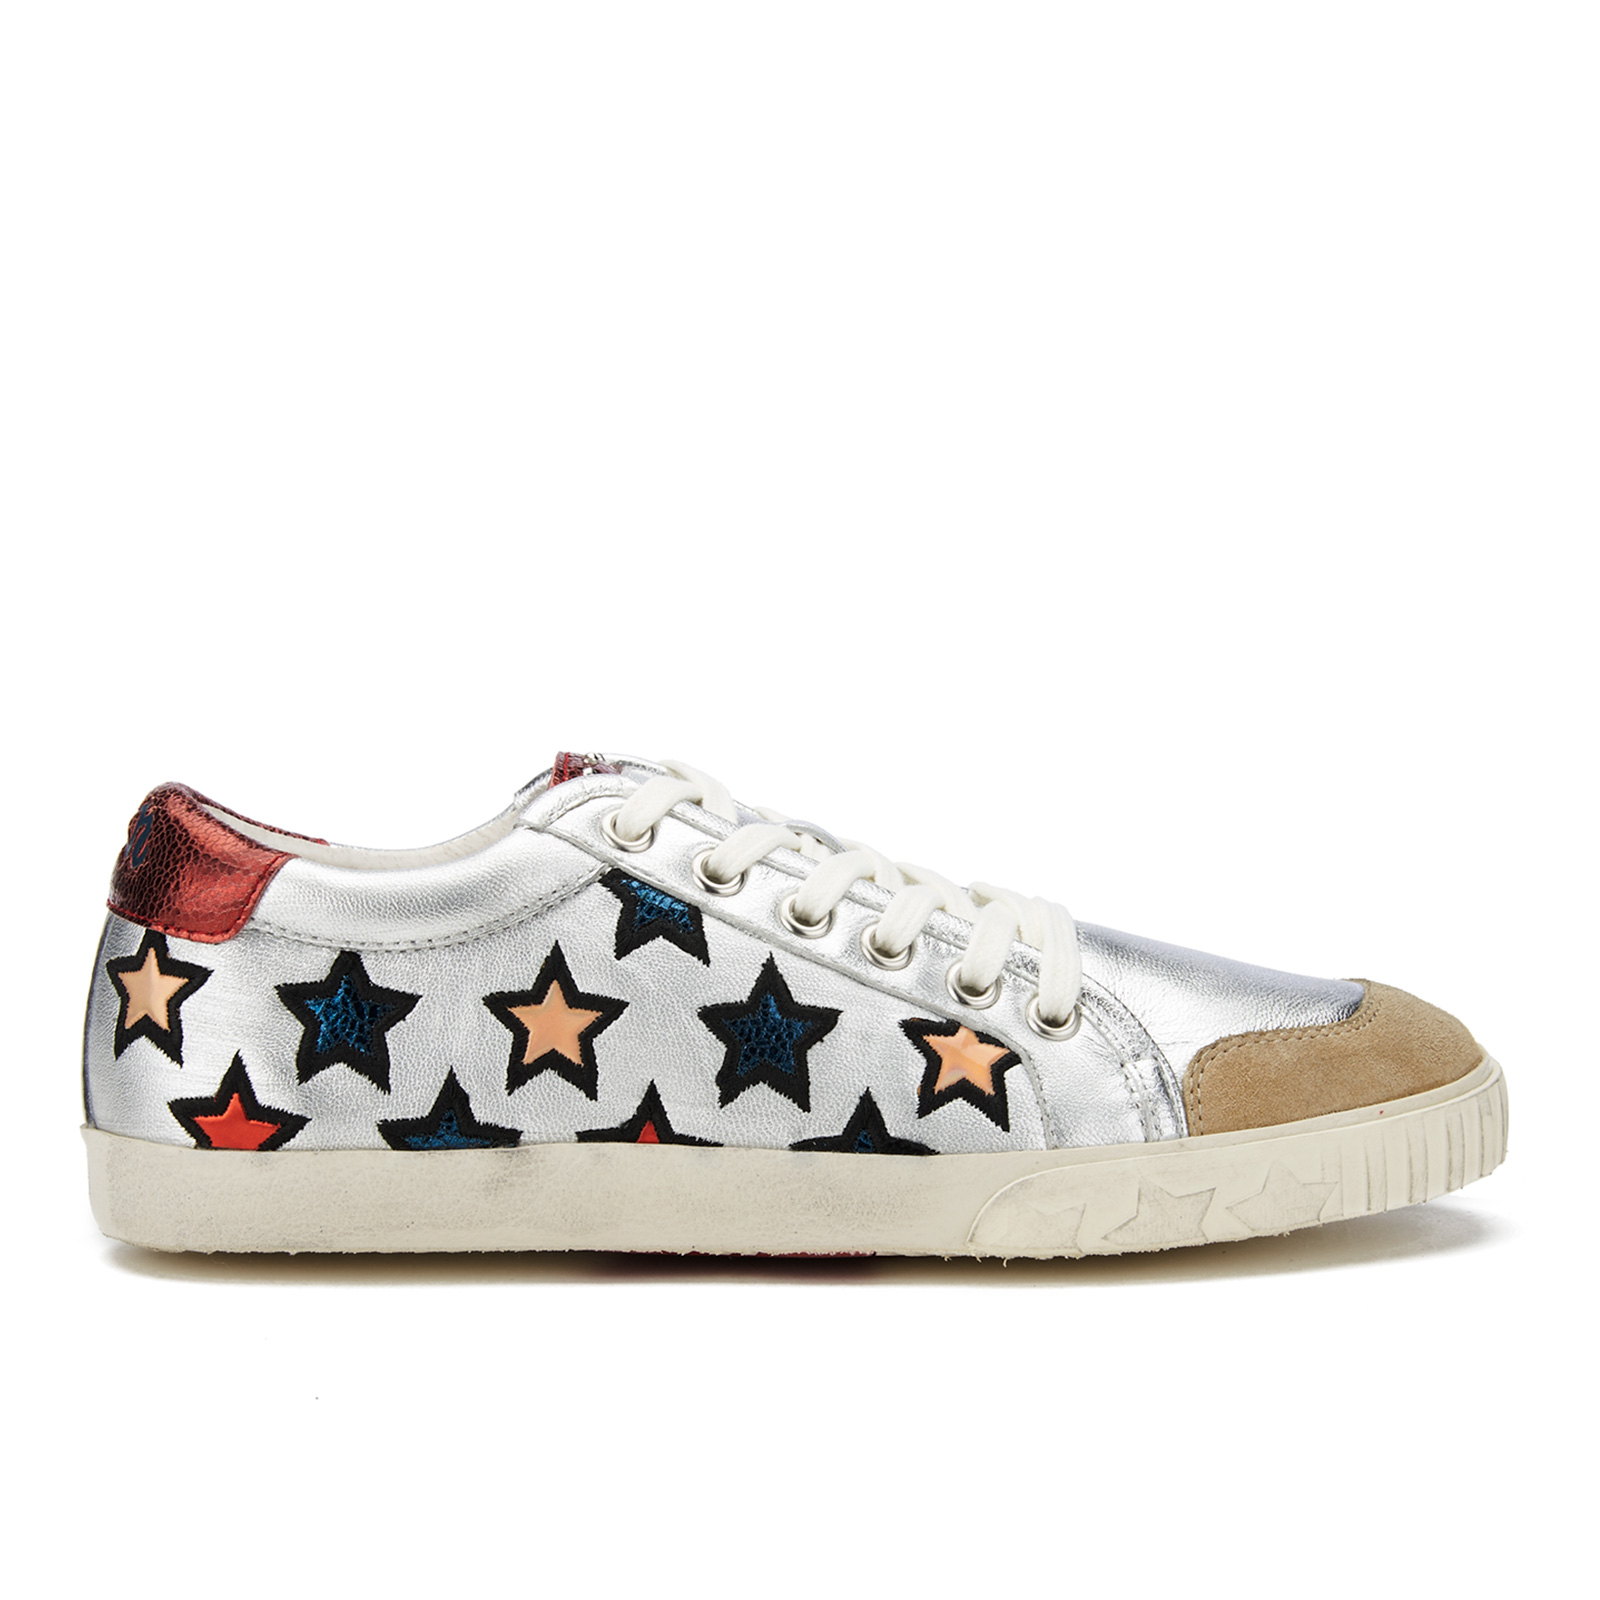 5d68463bf19 Ash Women s Majestic Star Print Low Top Trainers - Seta Silver Red ...